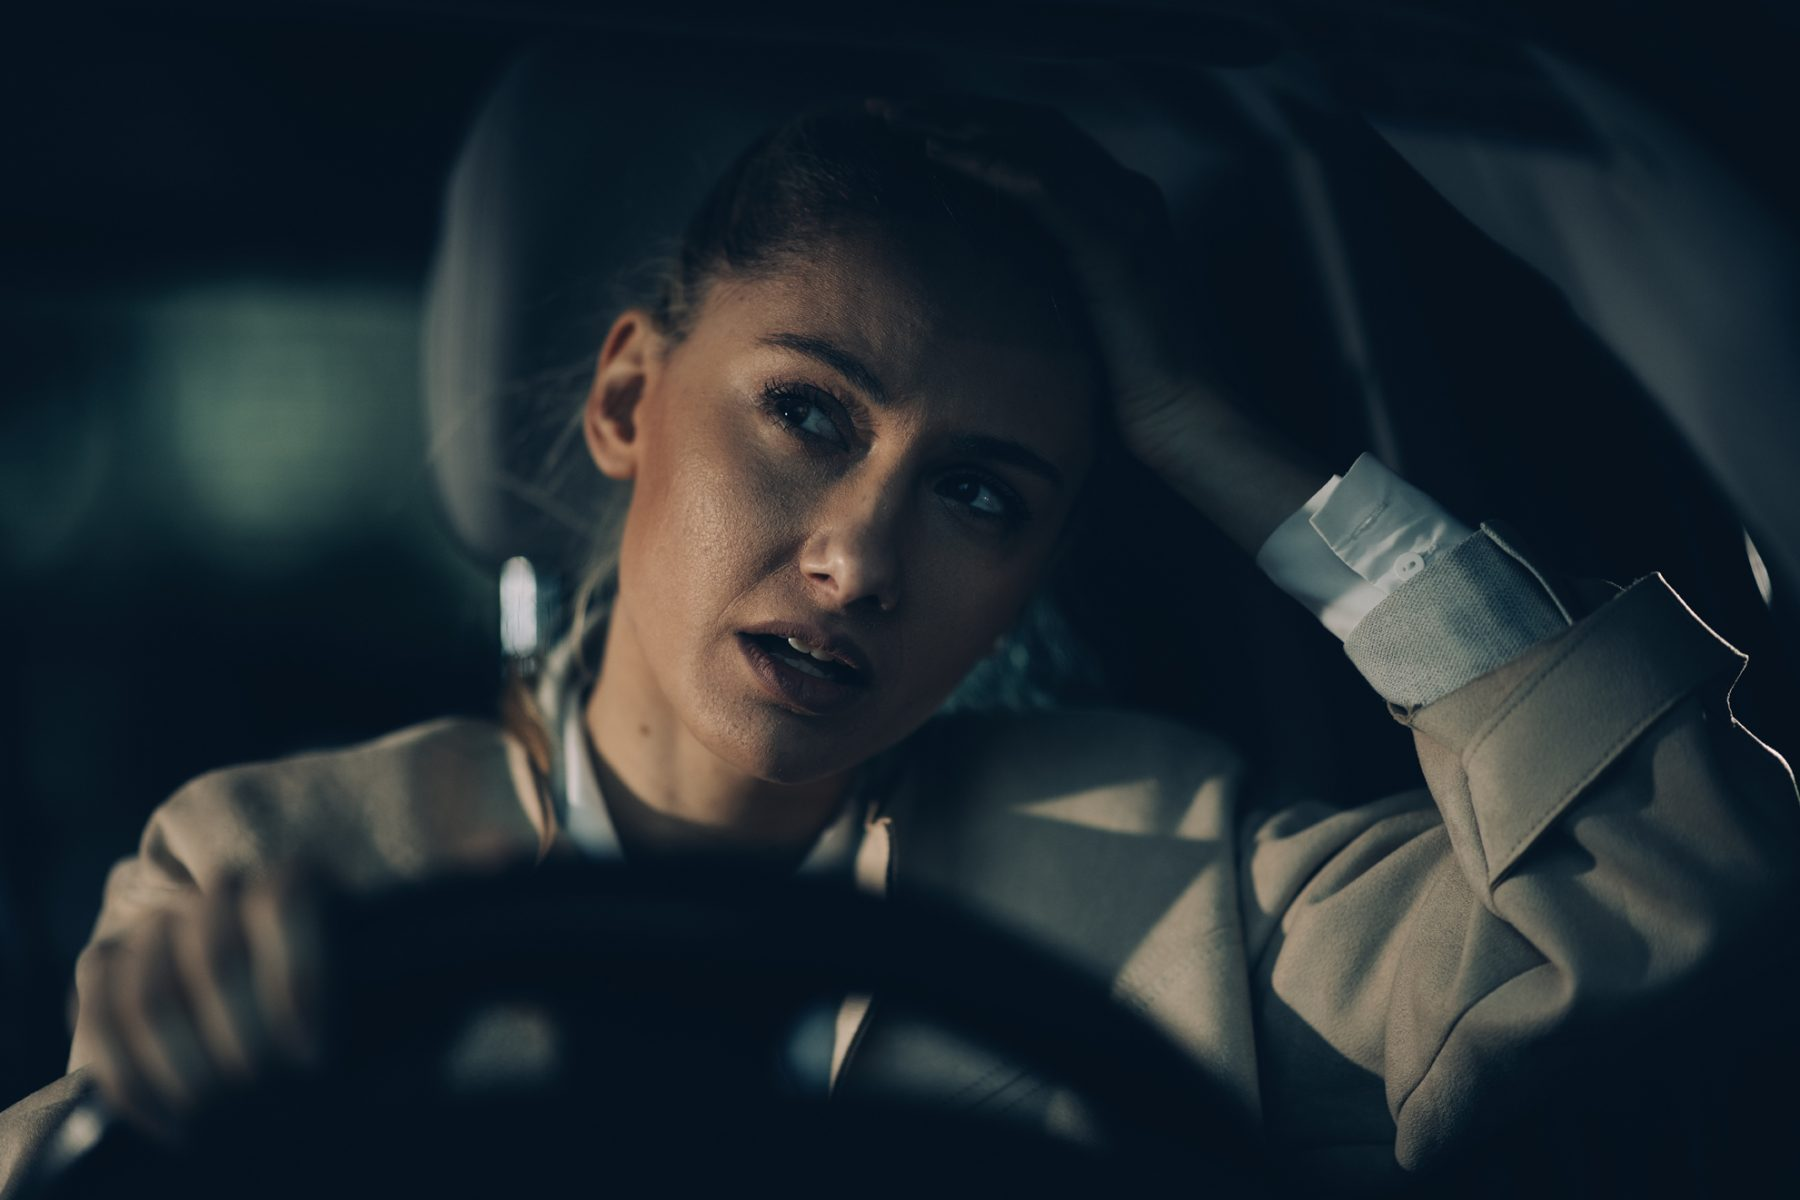 Woman annoyed driving, if you have had your drivers license suspended it is important to see a Ypsilanti License Restoration Lawyer for help.